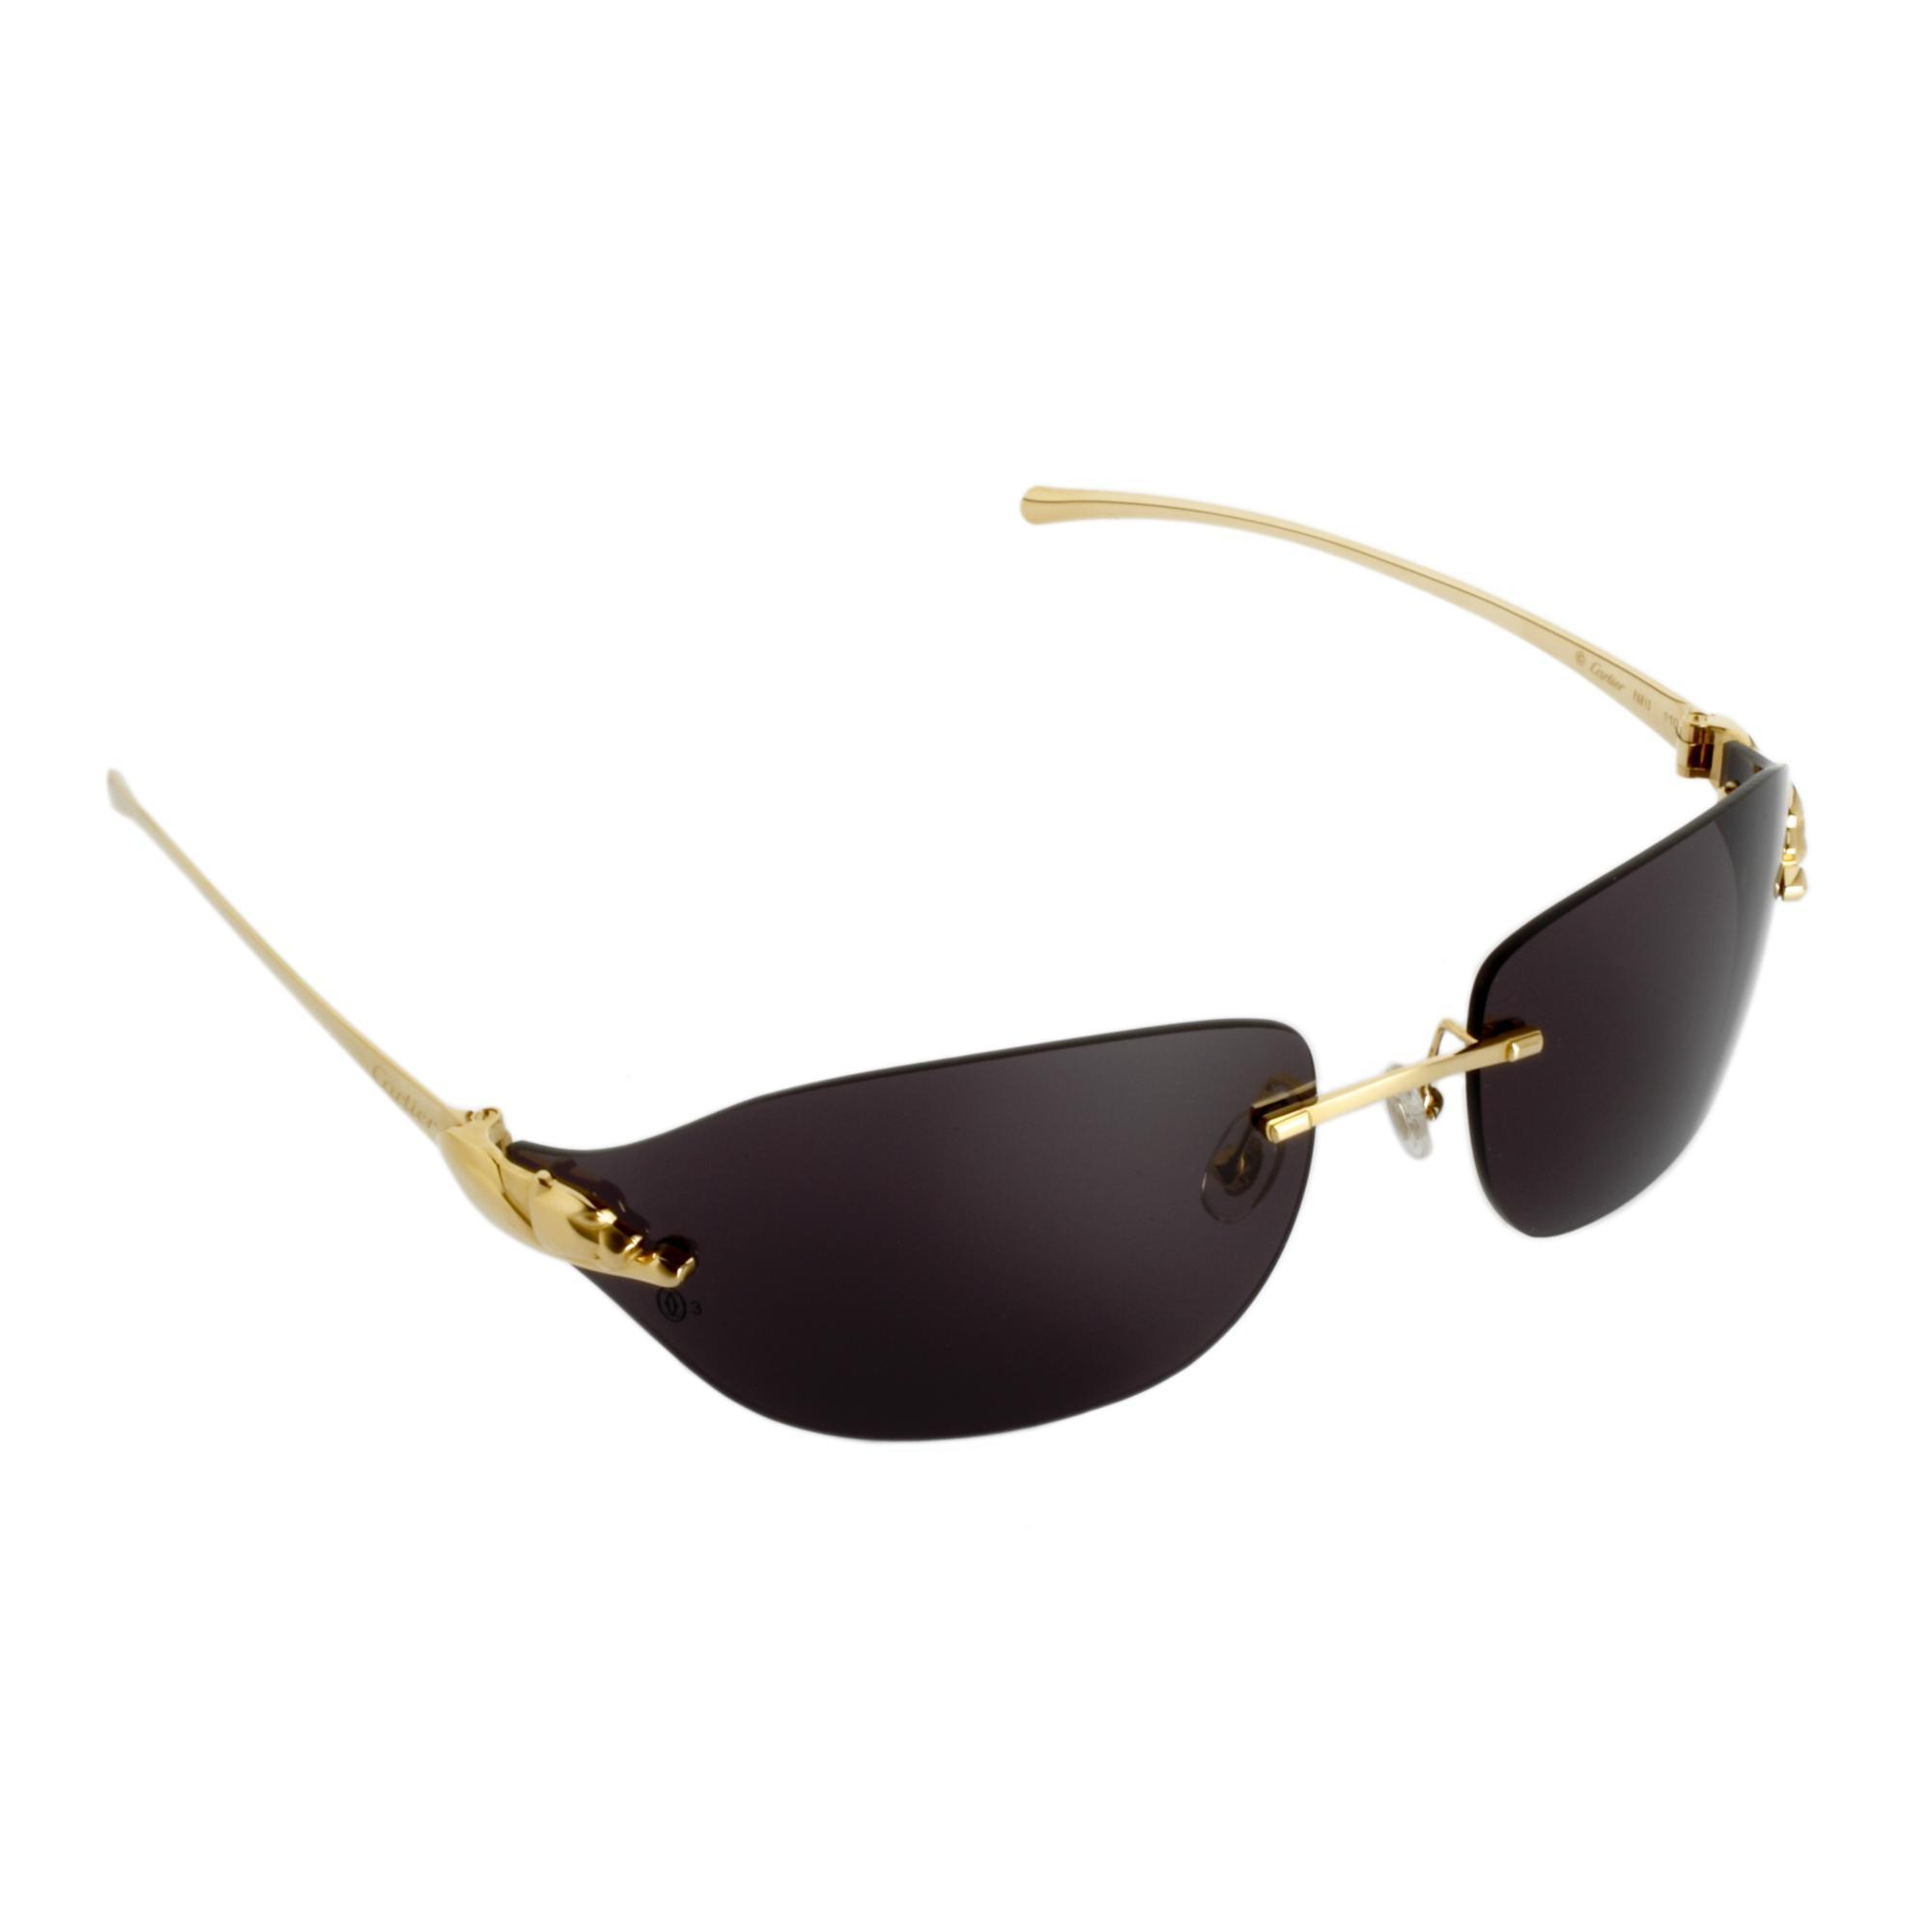 e6760771b0 Sunglasses - Cartier Panthere for sale in Johannesburg (ID 386668327)